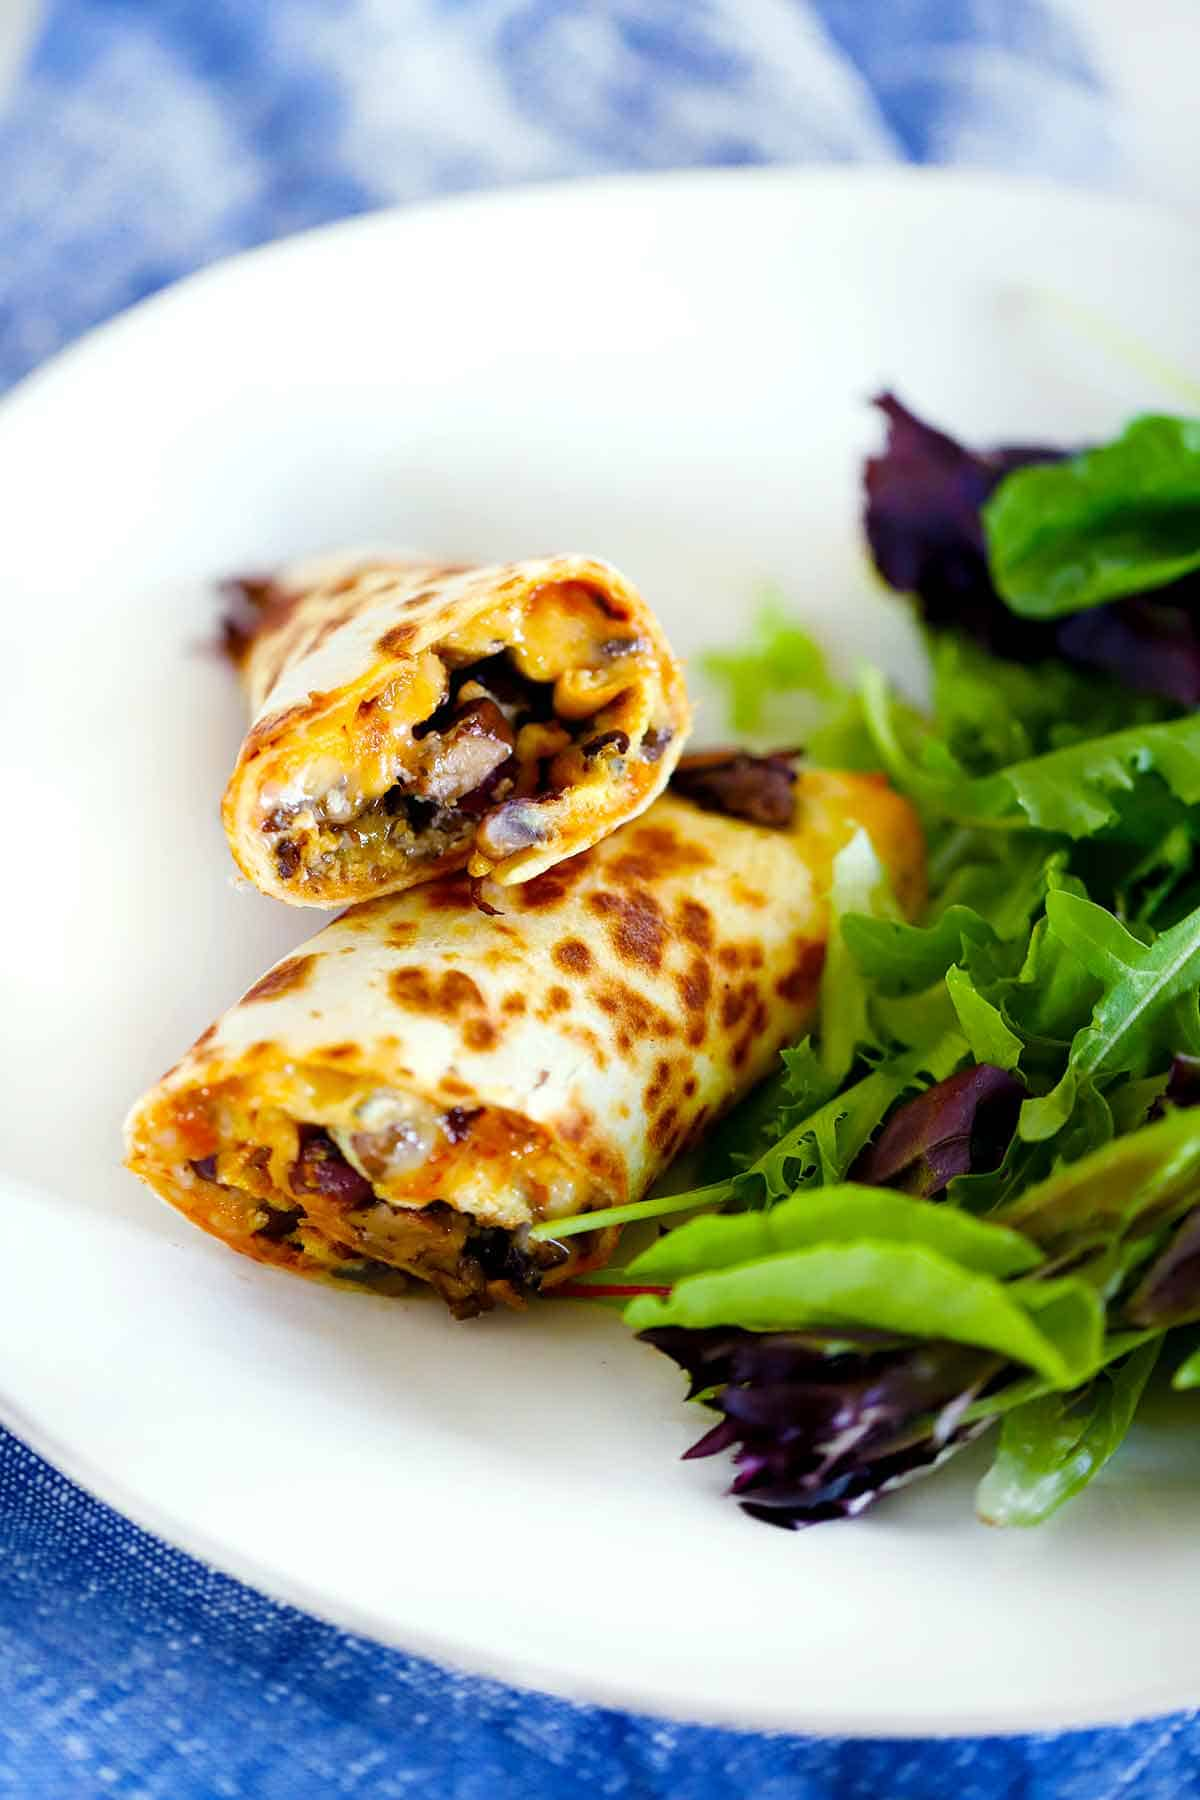 Egg wraps with mushrooms and olives cut in half on a white plate with a side of salad.